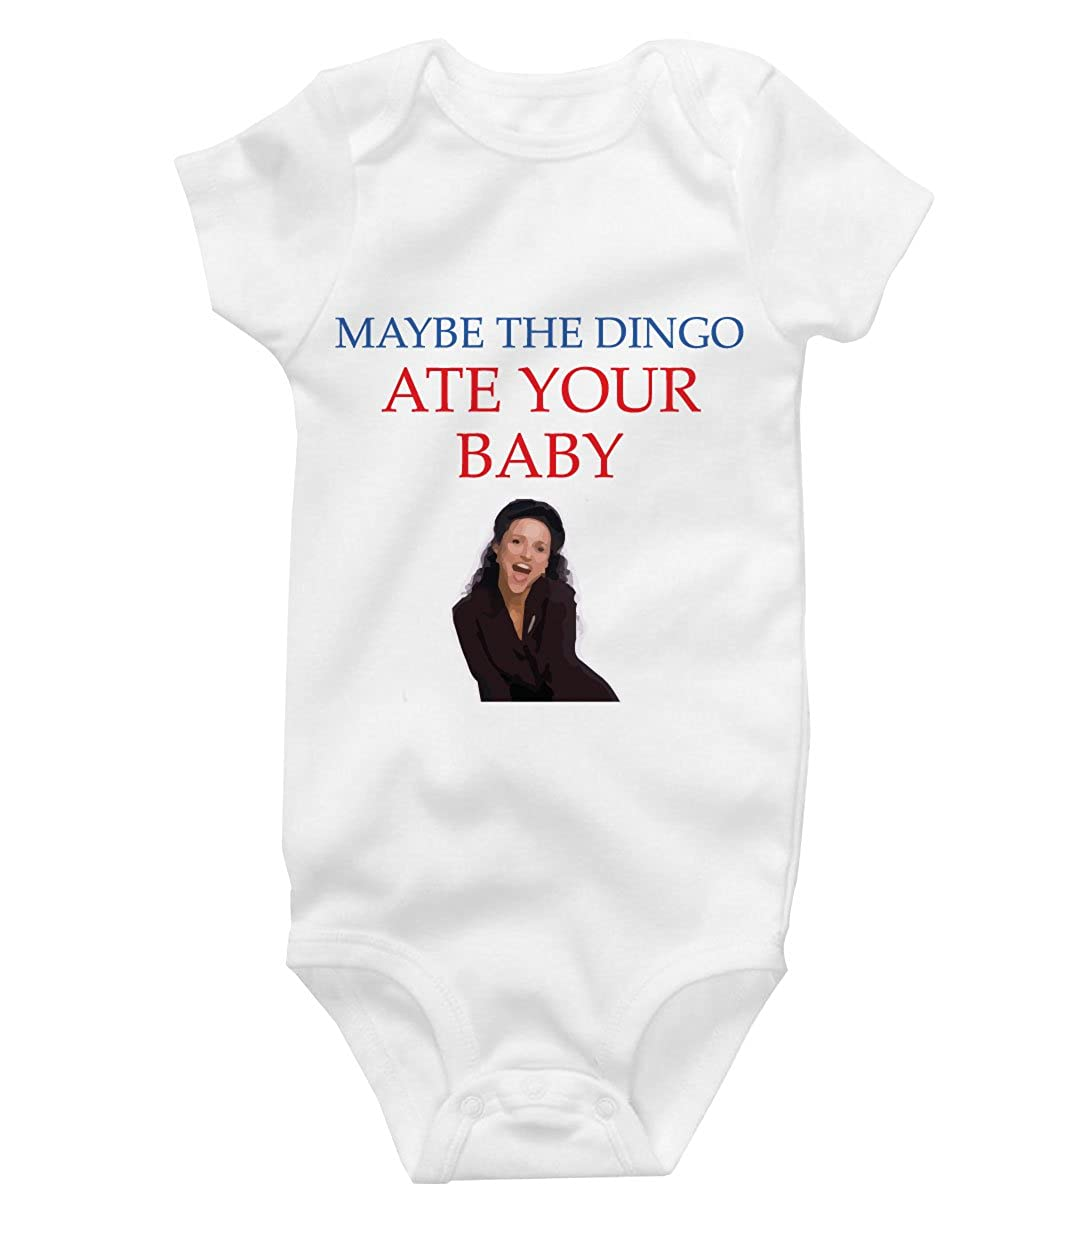 Vossamer Maybe The Dingo Ate Your Baby Seinfeld Parody Cute Onesie Funny Baby Bodysuit